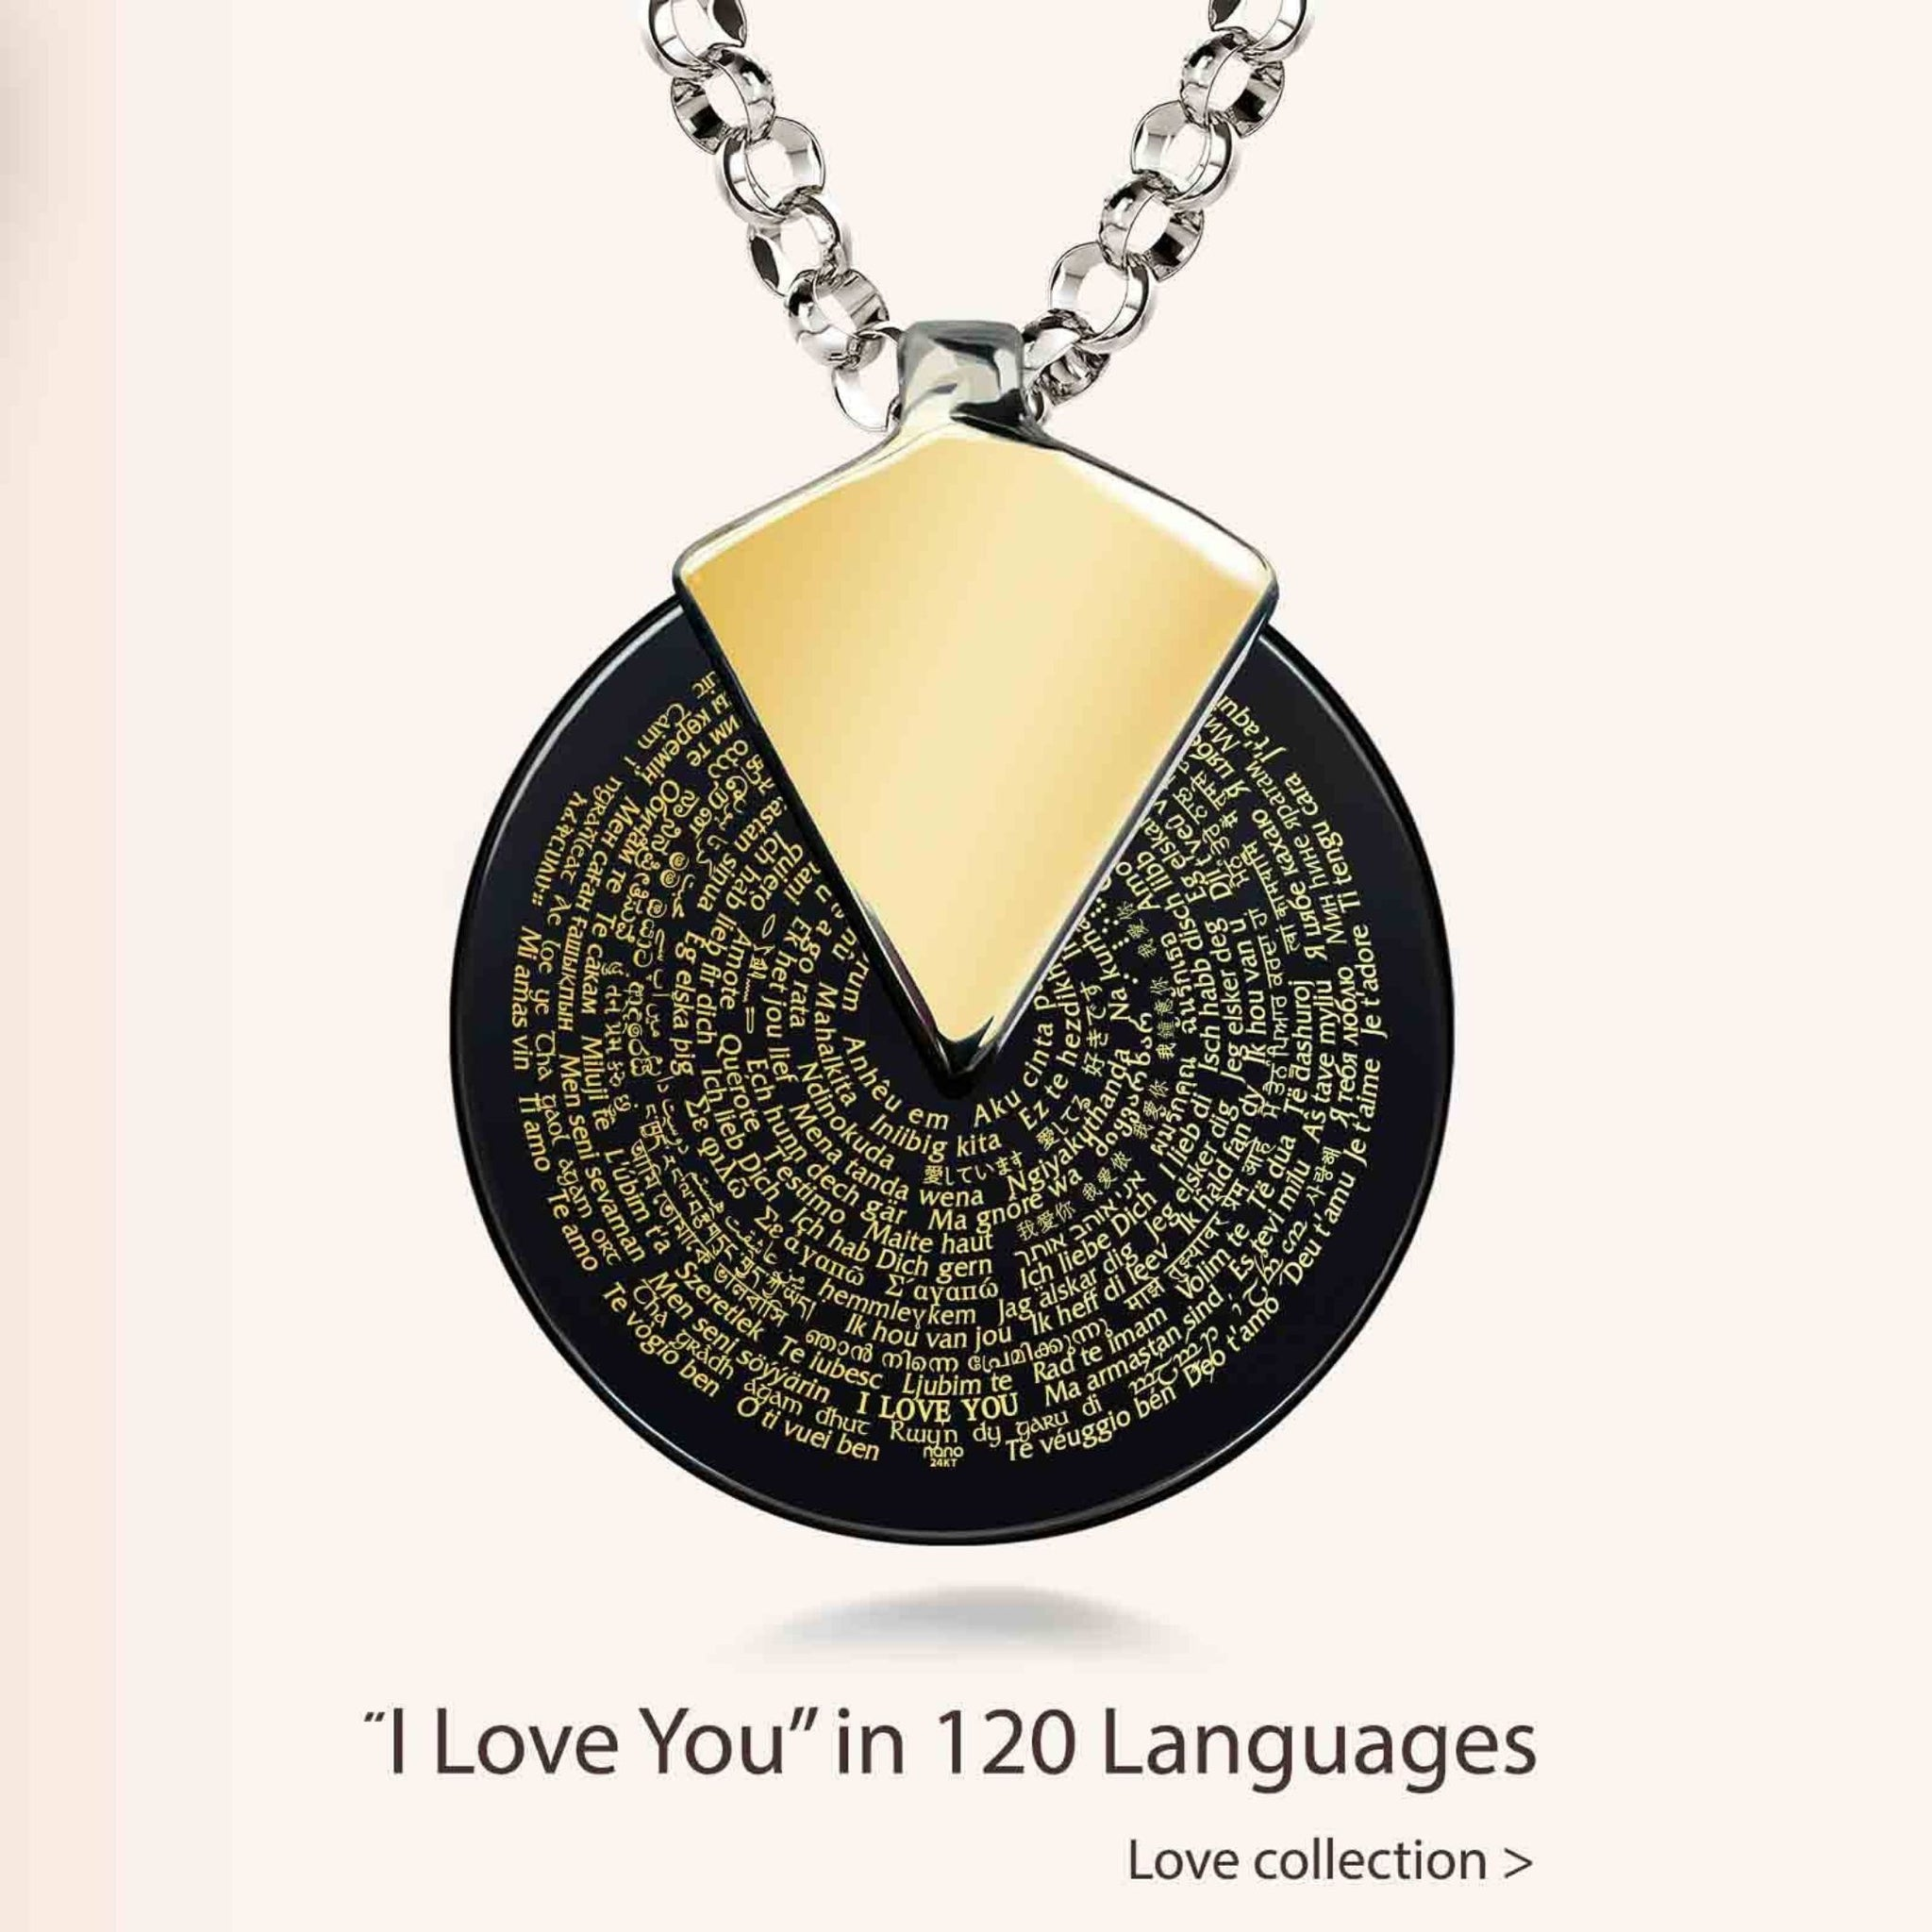 7 Dazzling Anniversary Necklaces for Her to Choose From